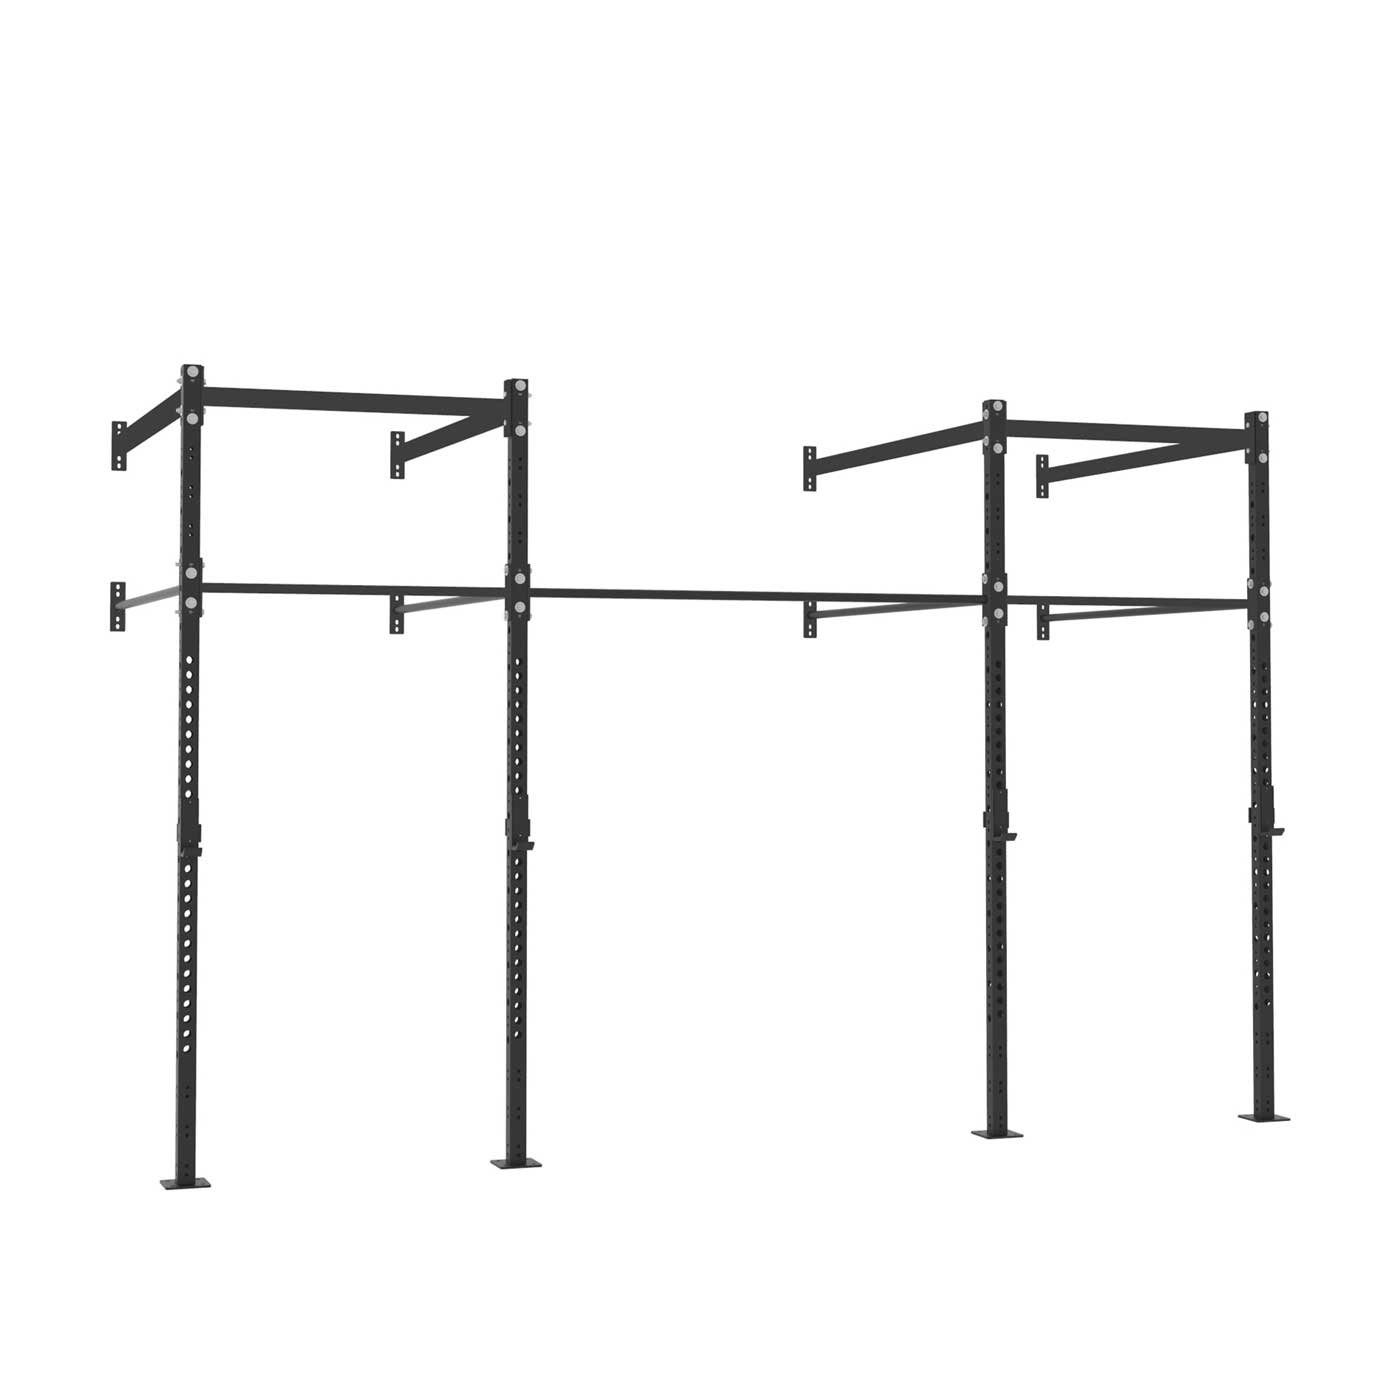 14ft Wall Mount Pull-Up Rig